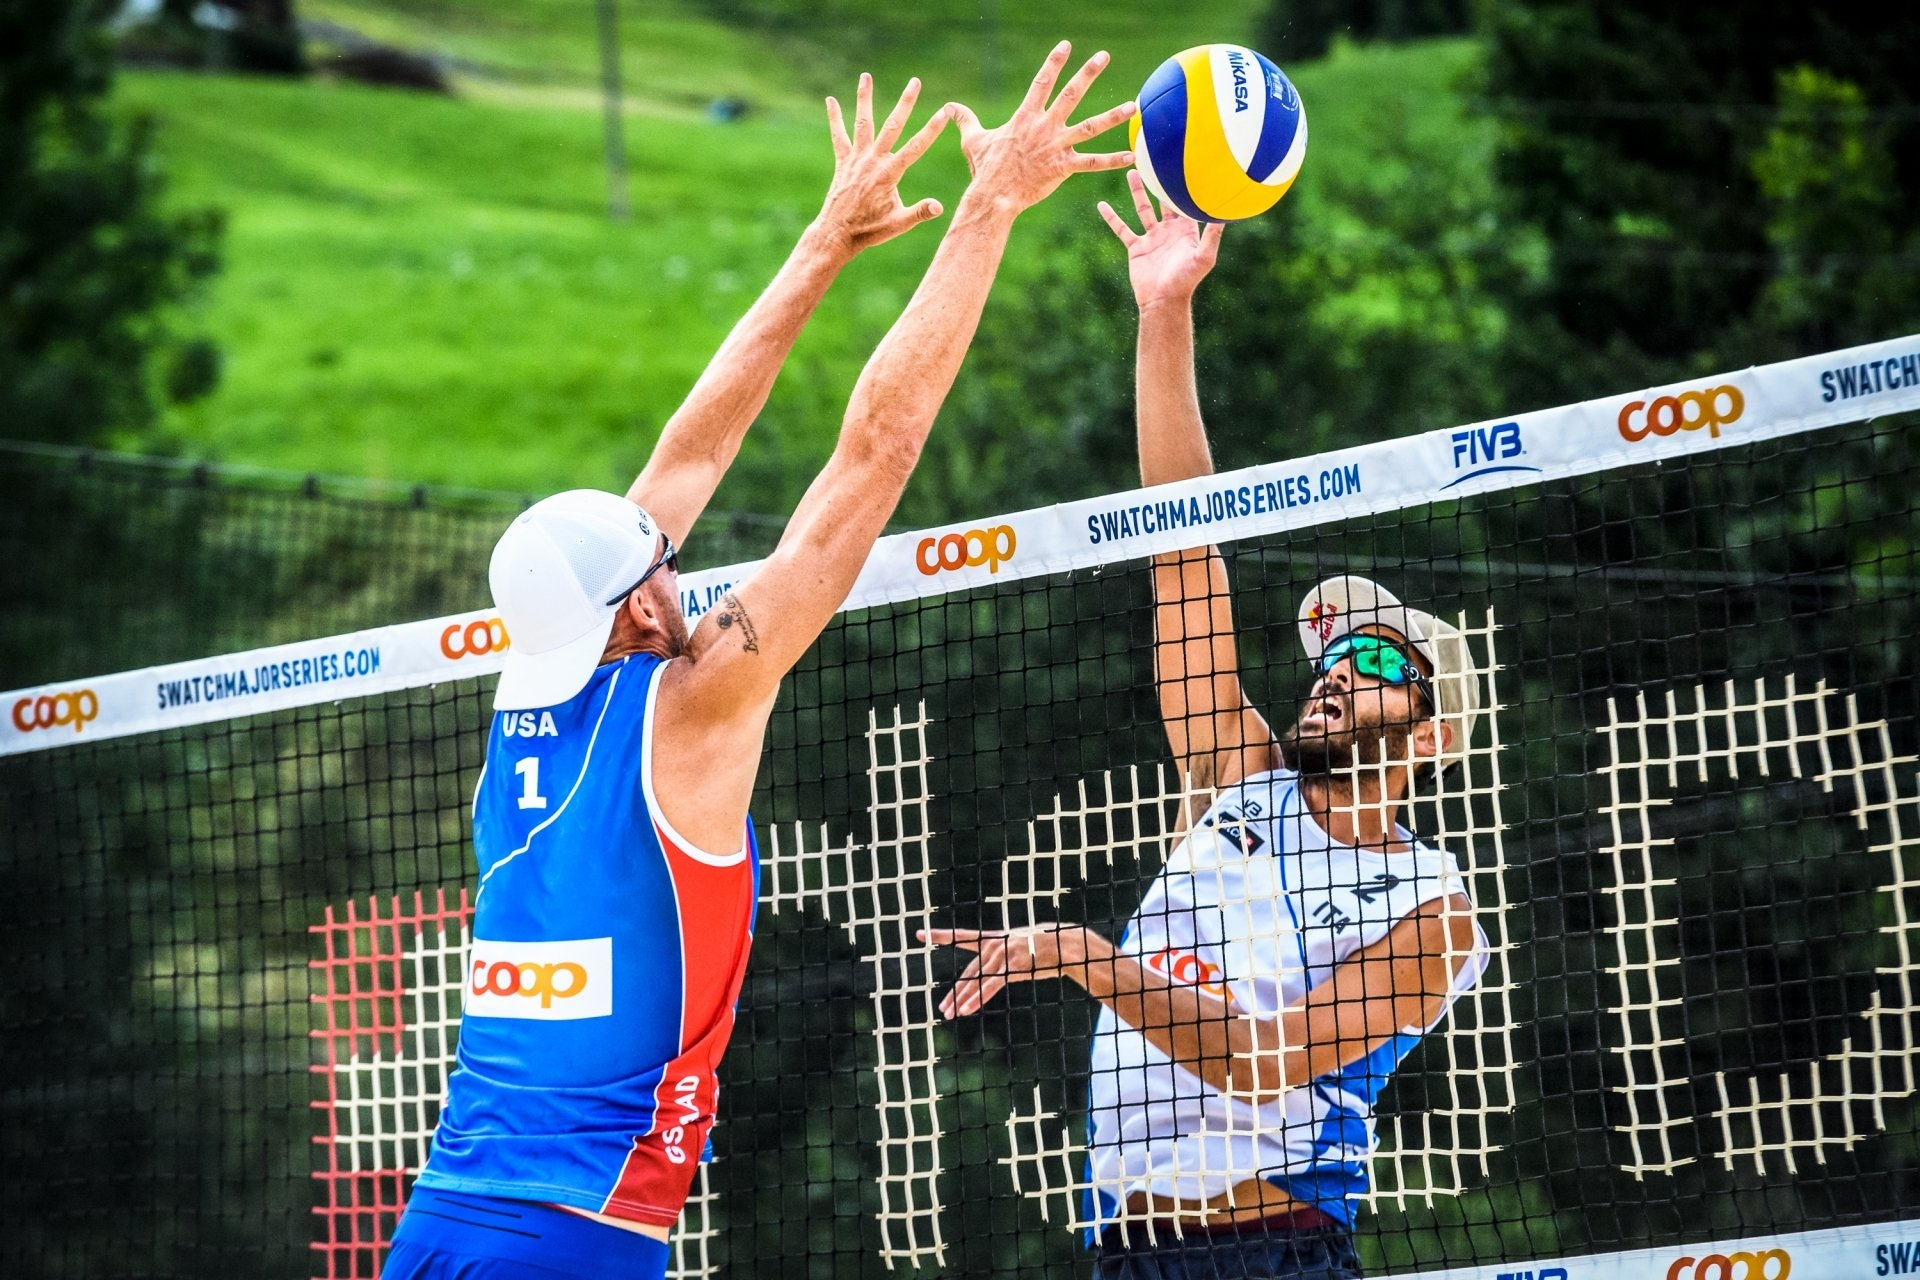 Italians Lupo/Nicolai and Americans Crabb/Gibb will meet in Gstaad's pool play for the second straight year